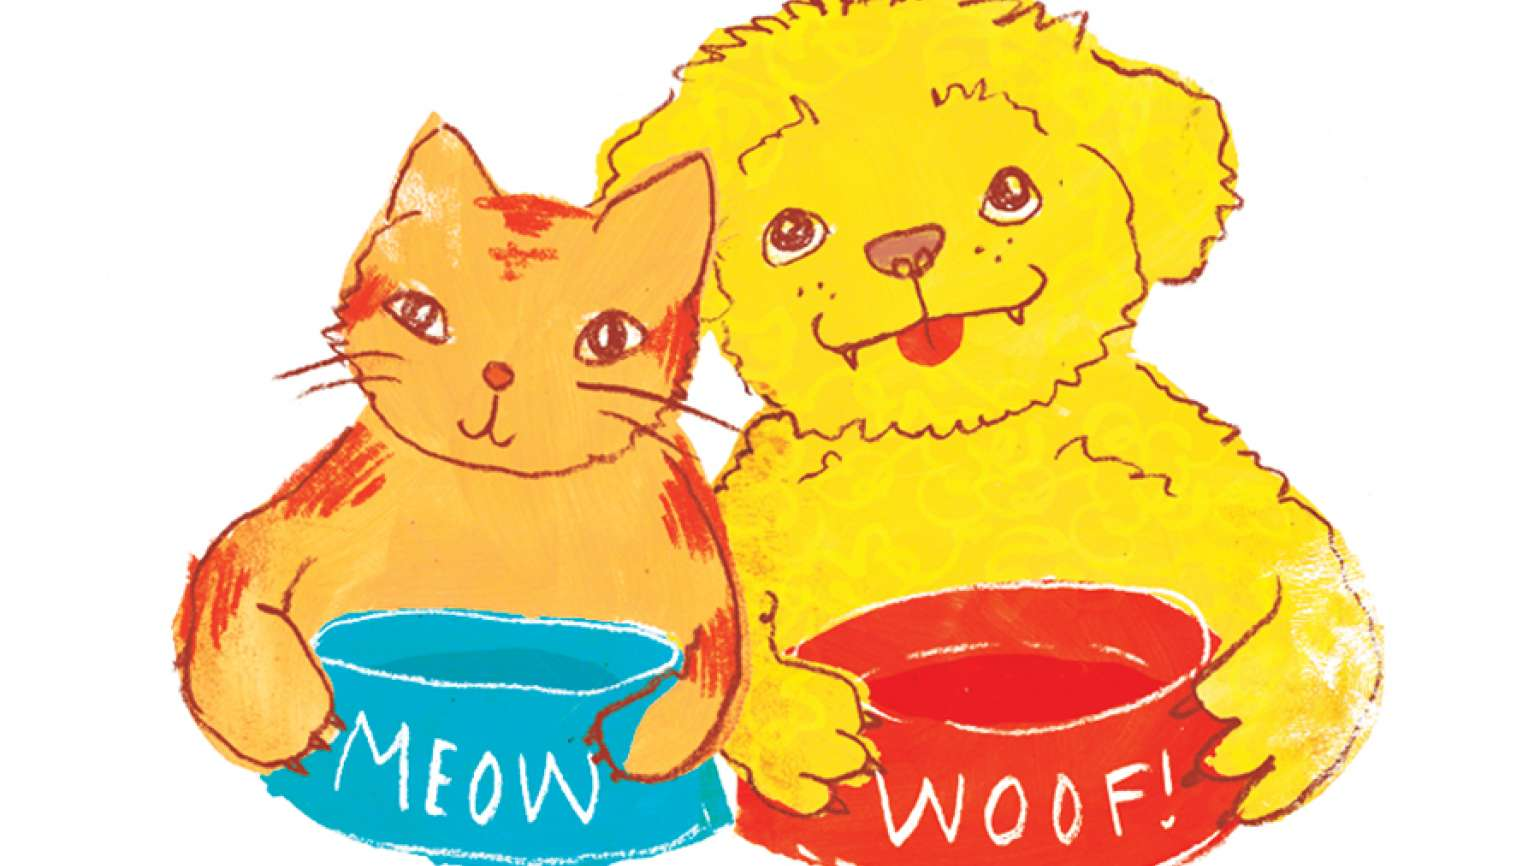 An artist's rendering of a dog and cat with empty food bowls.